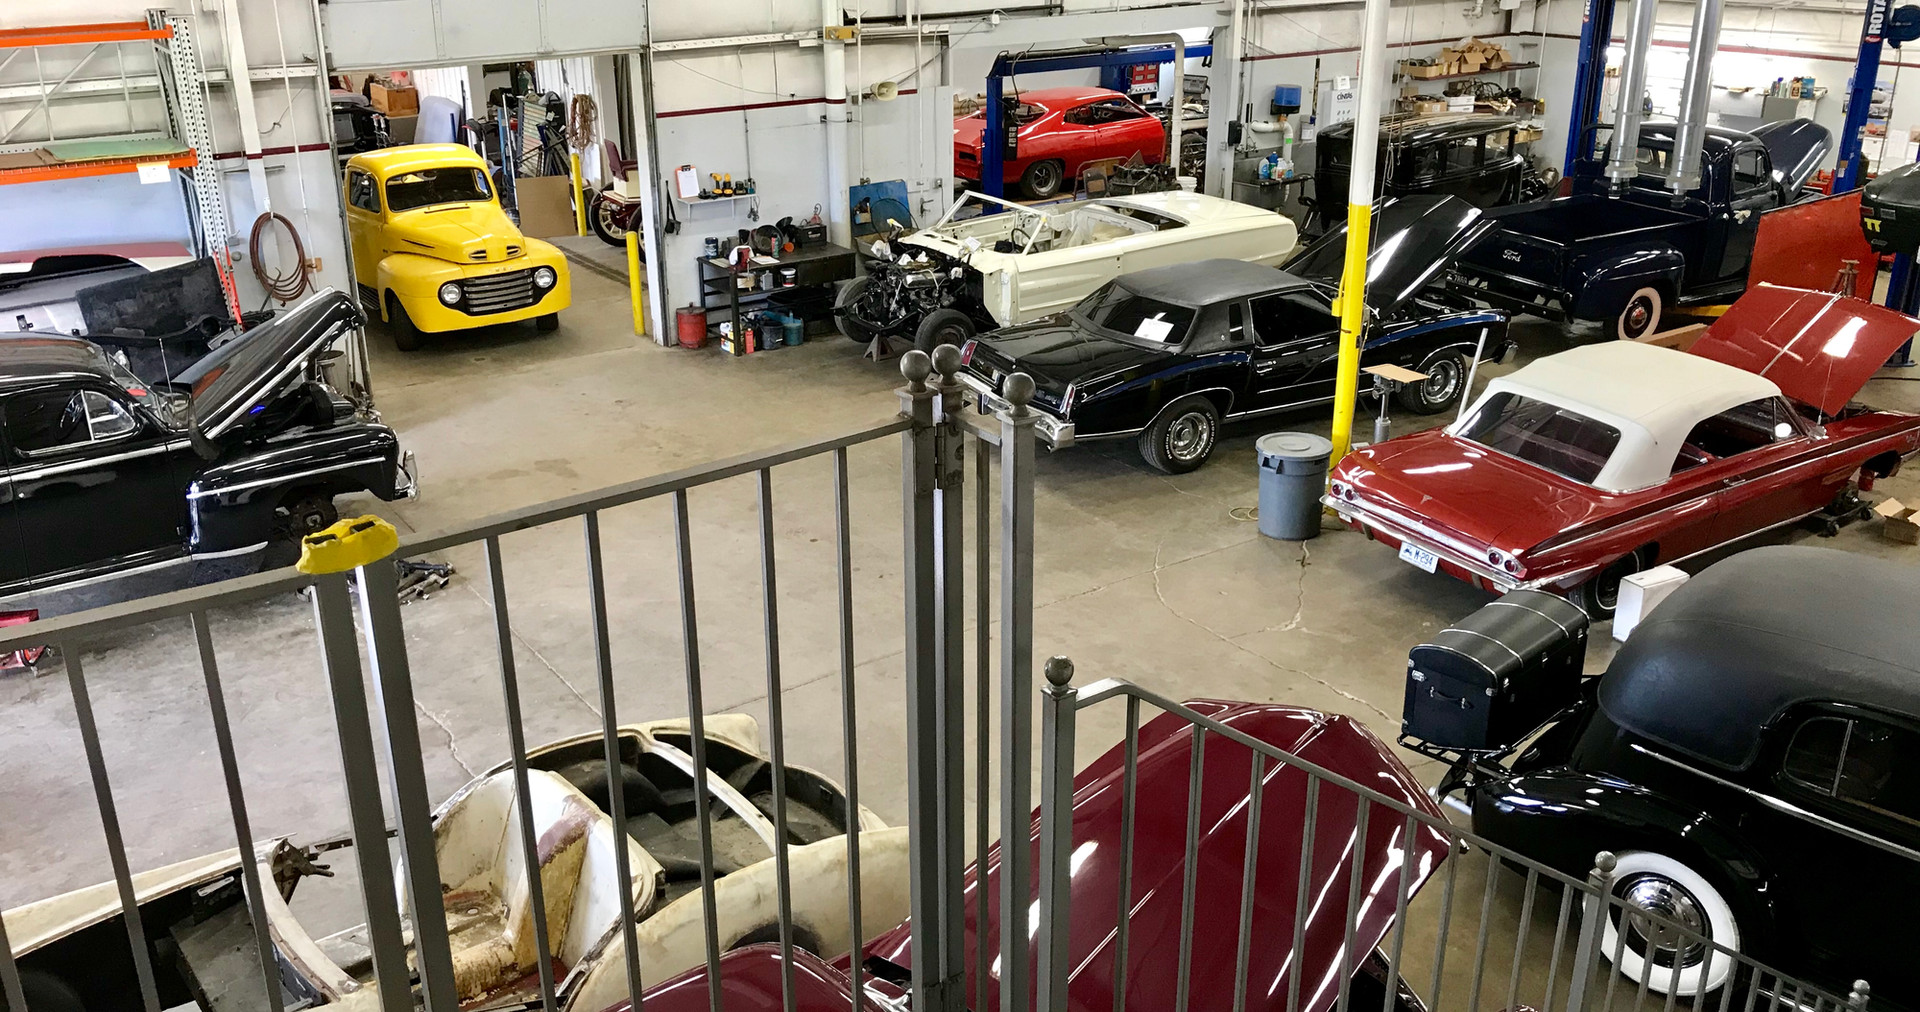 Our clean, 15,000 sq ft facility can handle all of your mechanical and restoration needs.